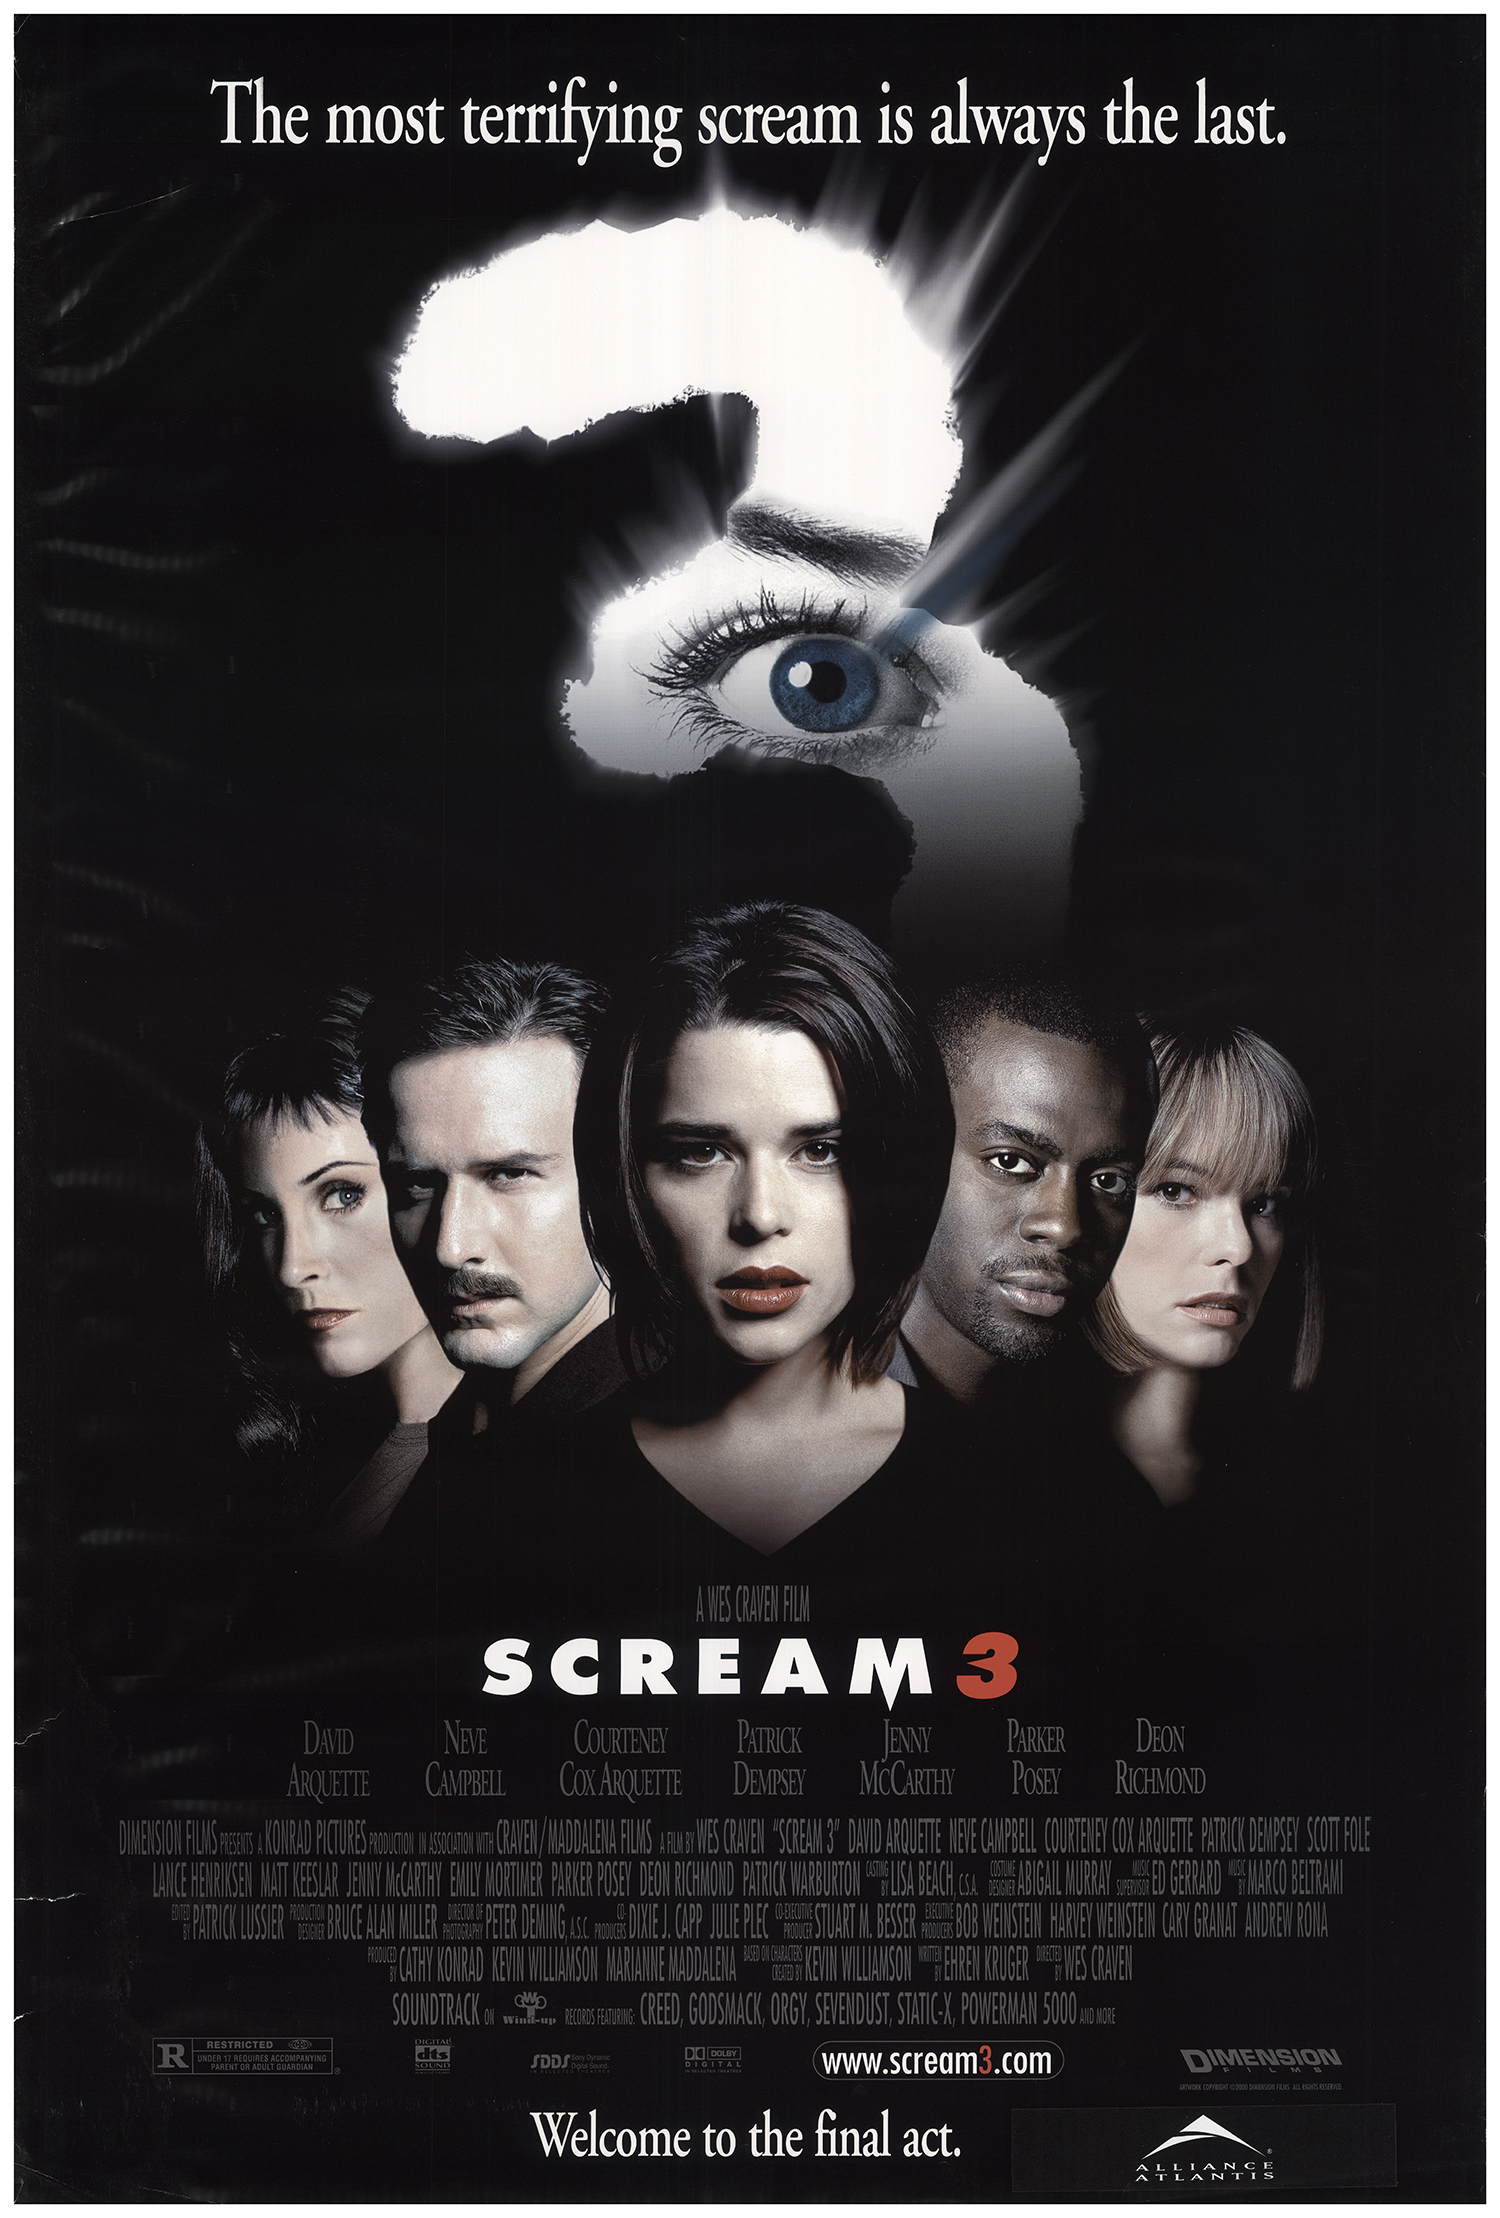 Scream 3 2000 Original Movie Poster #FFF-73732 | FFFMovieposters.com